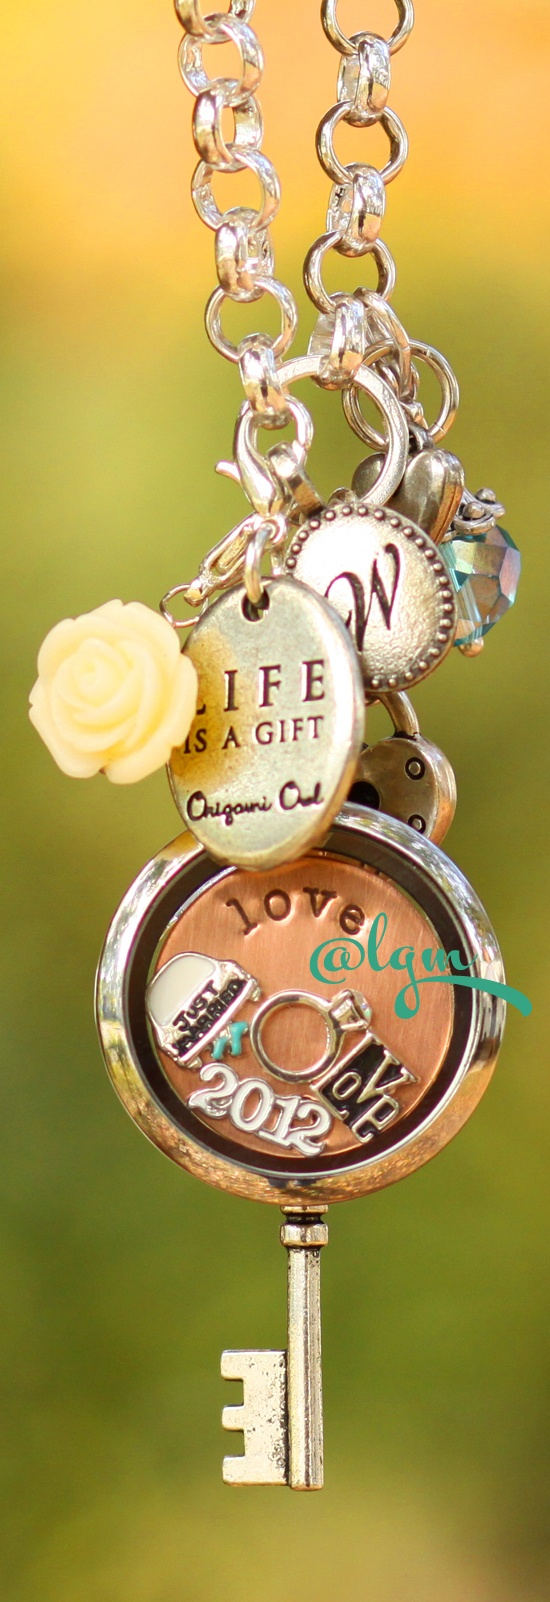 92 best origami owl deannascottorigamiowl images on a great way to remember your wedding day origamiowl lorrimoffatt origamiowl jeuxipadfo Images